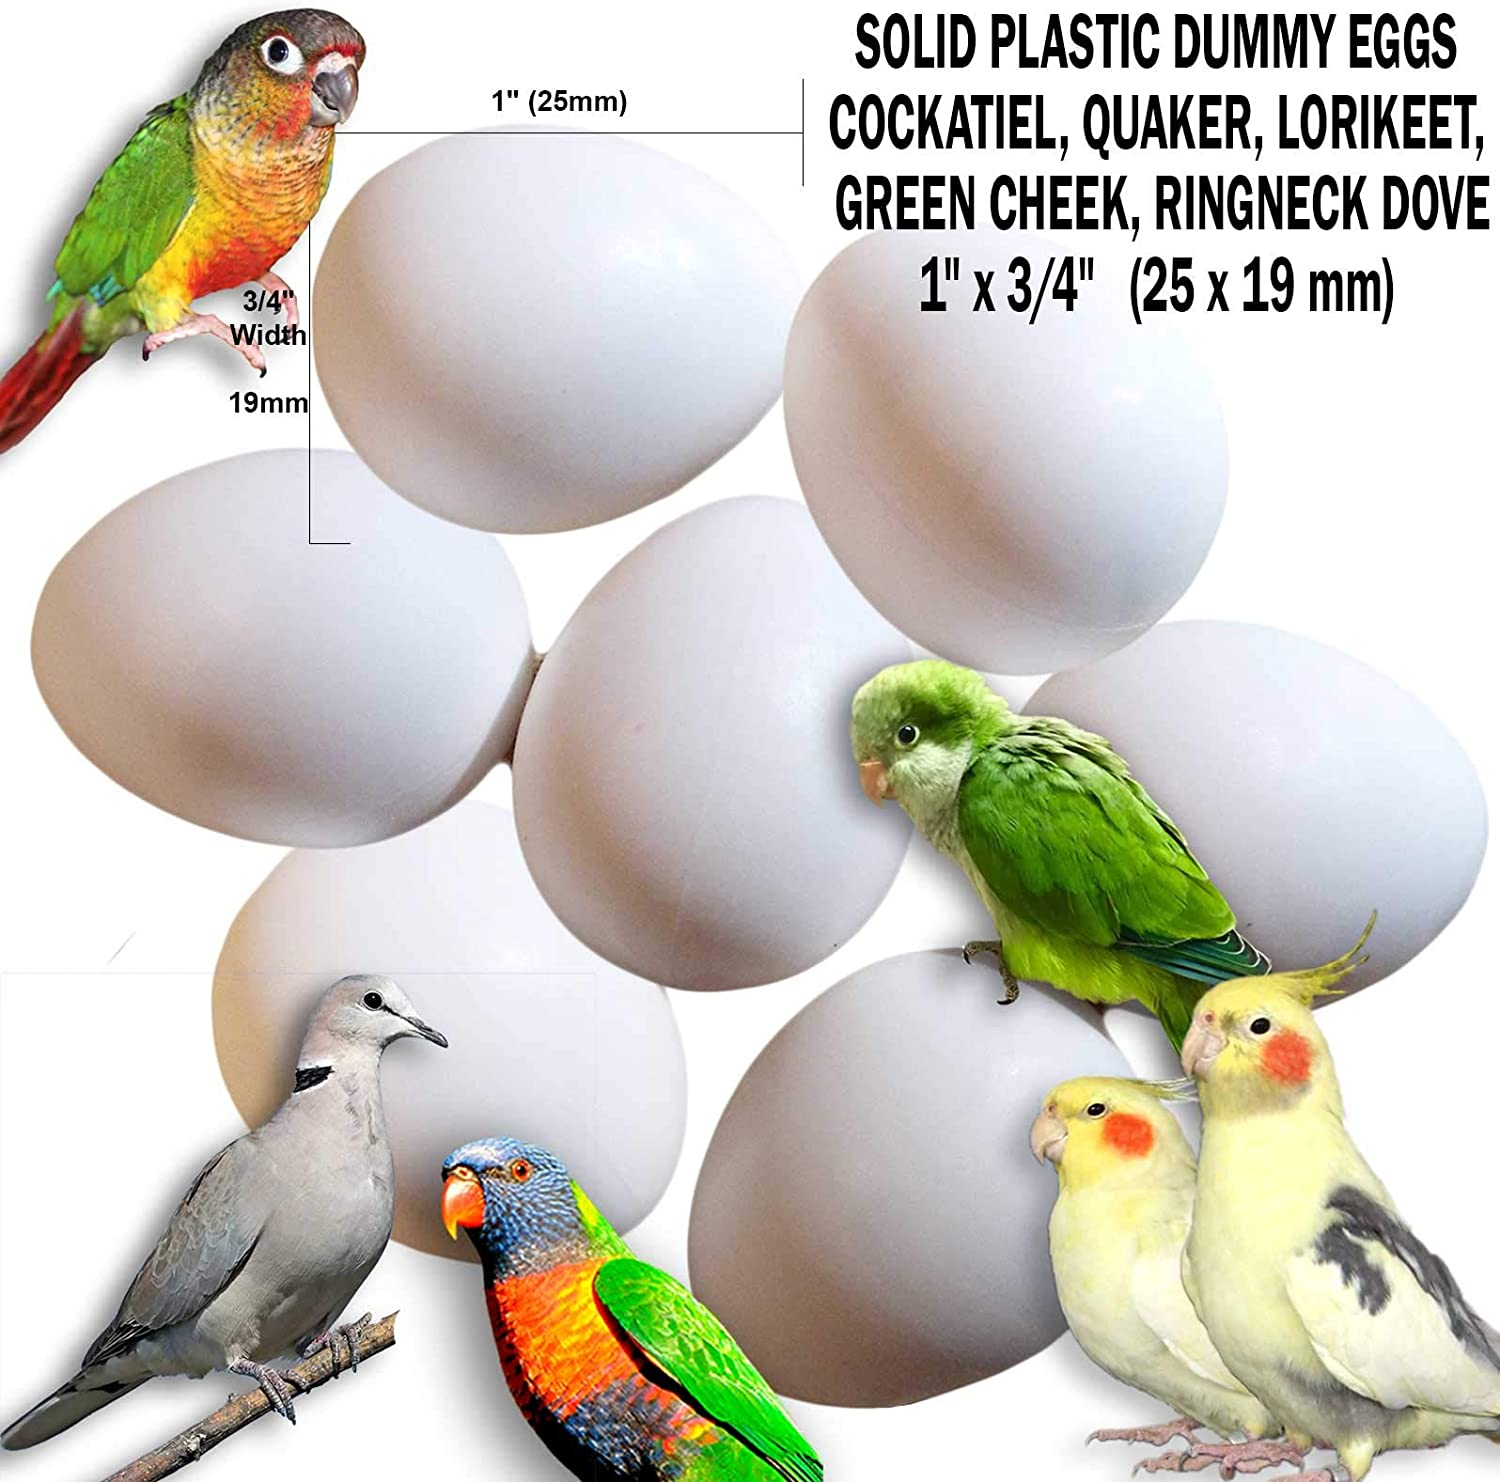 "DummyEggs Stop Laying! Cockatiel, Quaker Parrot, Green Cheek, Lorikeet, Ringneck Dove - Non-Toxic White Solid Plastic Realistic 1"" x 3/4"" / 25x19mm Fake Bird Eggs & Kits"